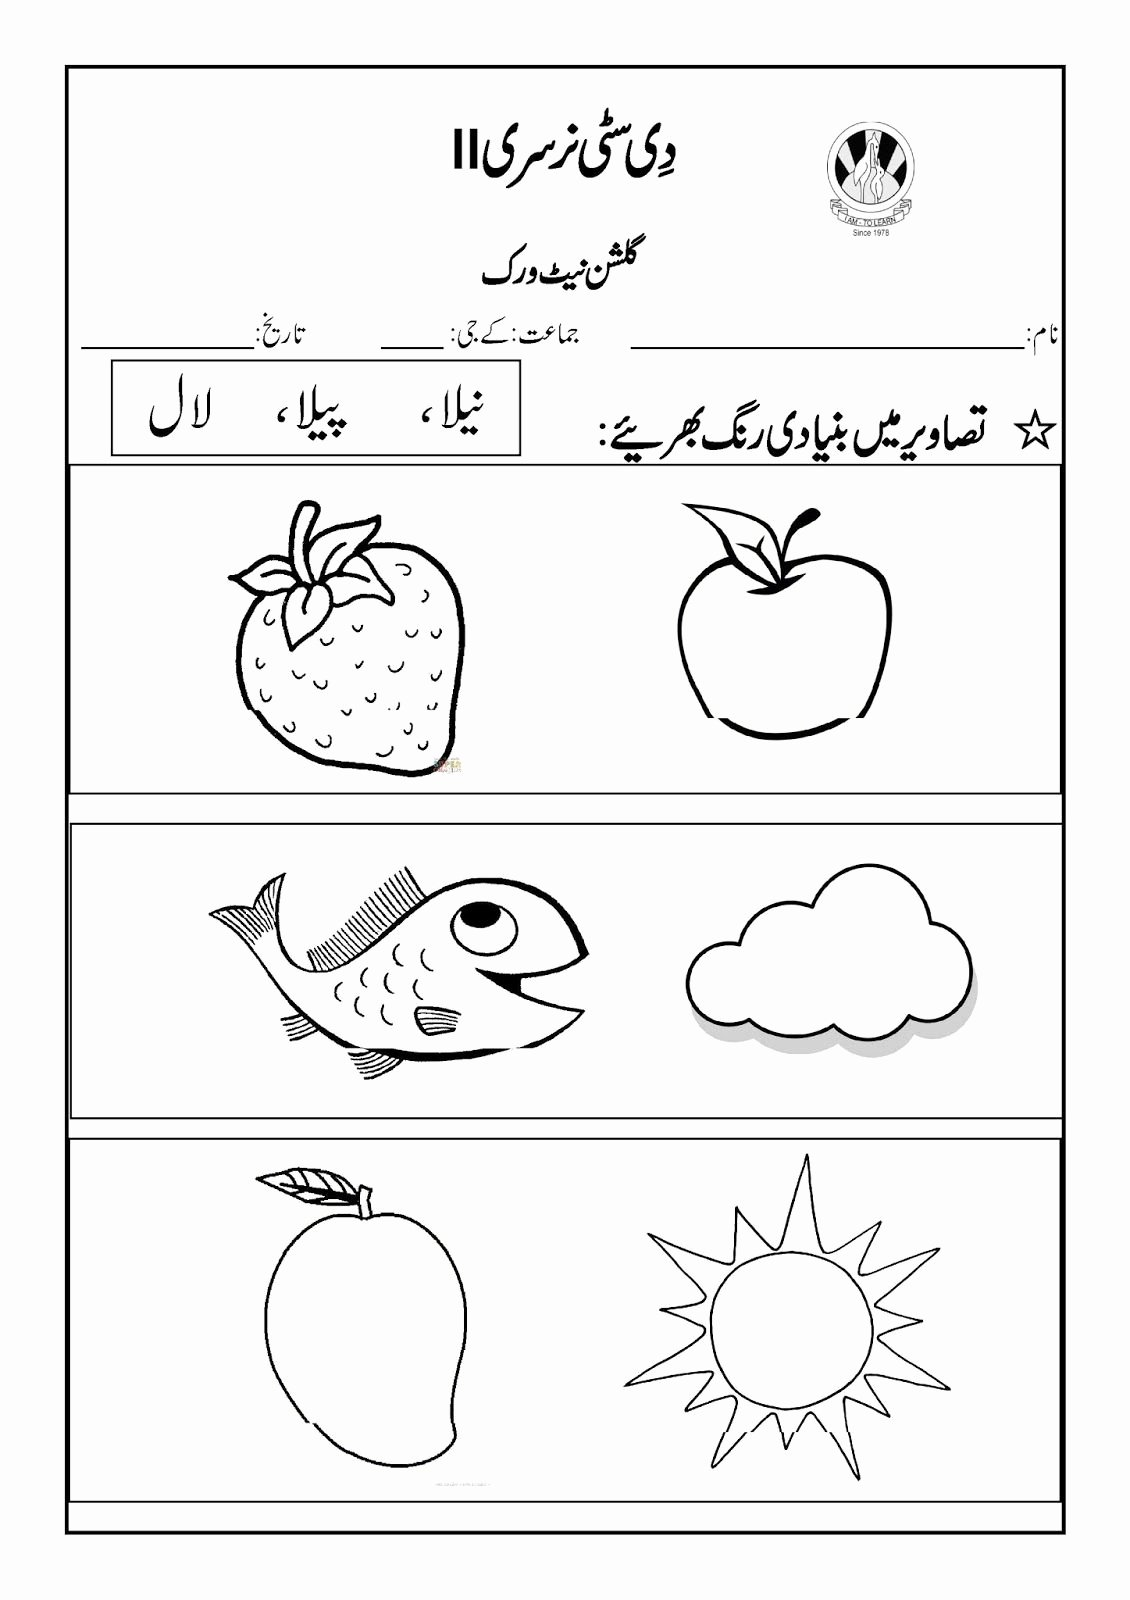 Download Urdu Worksheets for Preschoolers top Image Result for Urdu Worksheets for Nursery